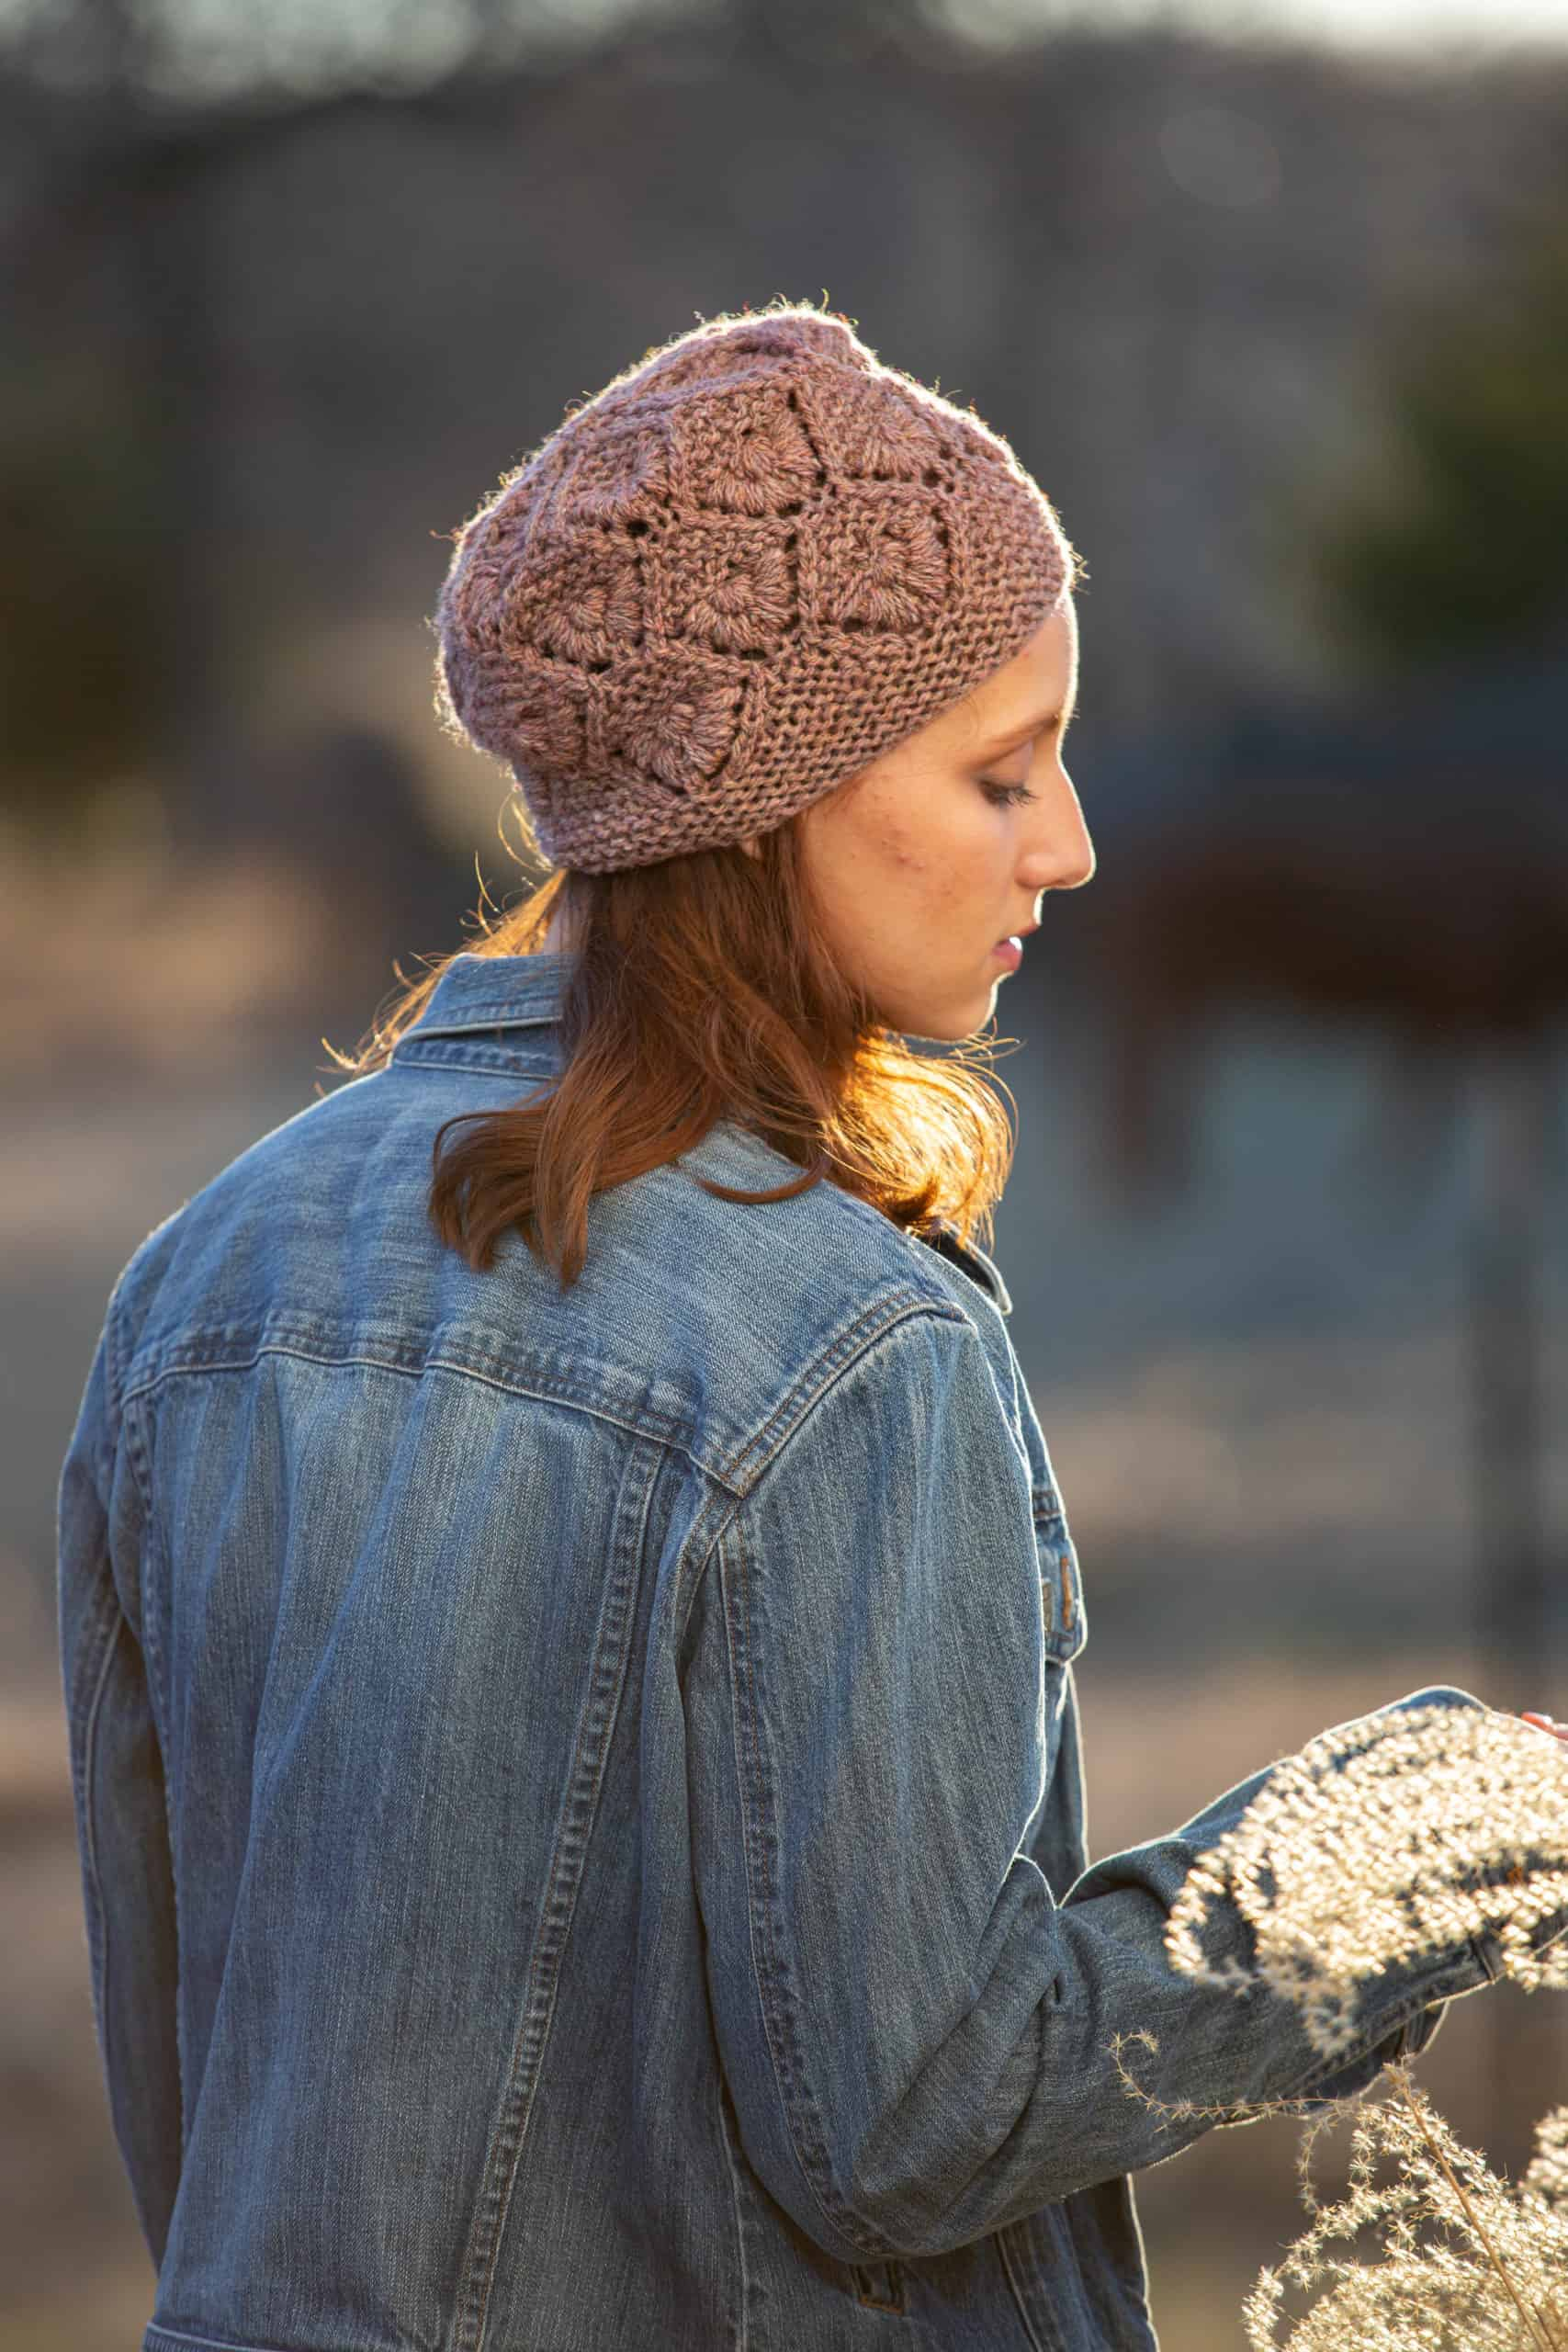 A dusky pink knit hat with a floral pattern.